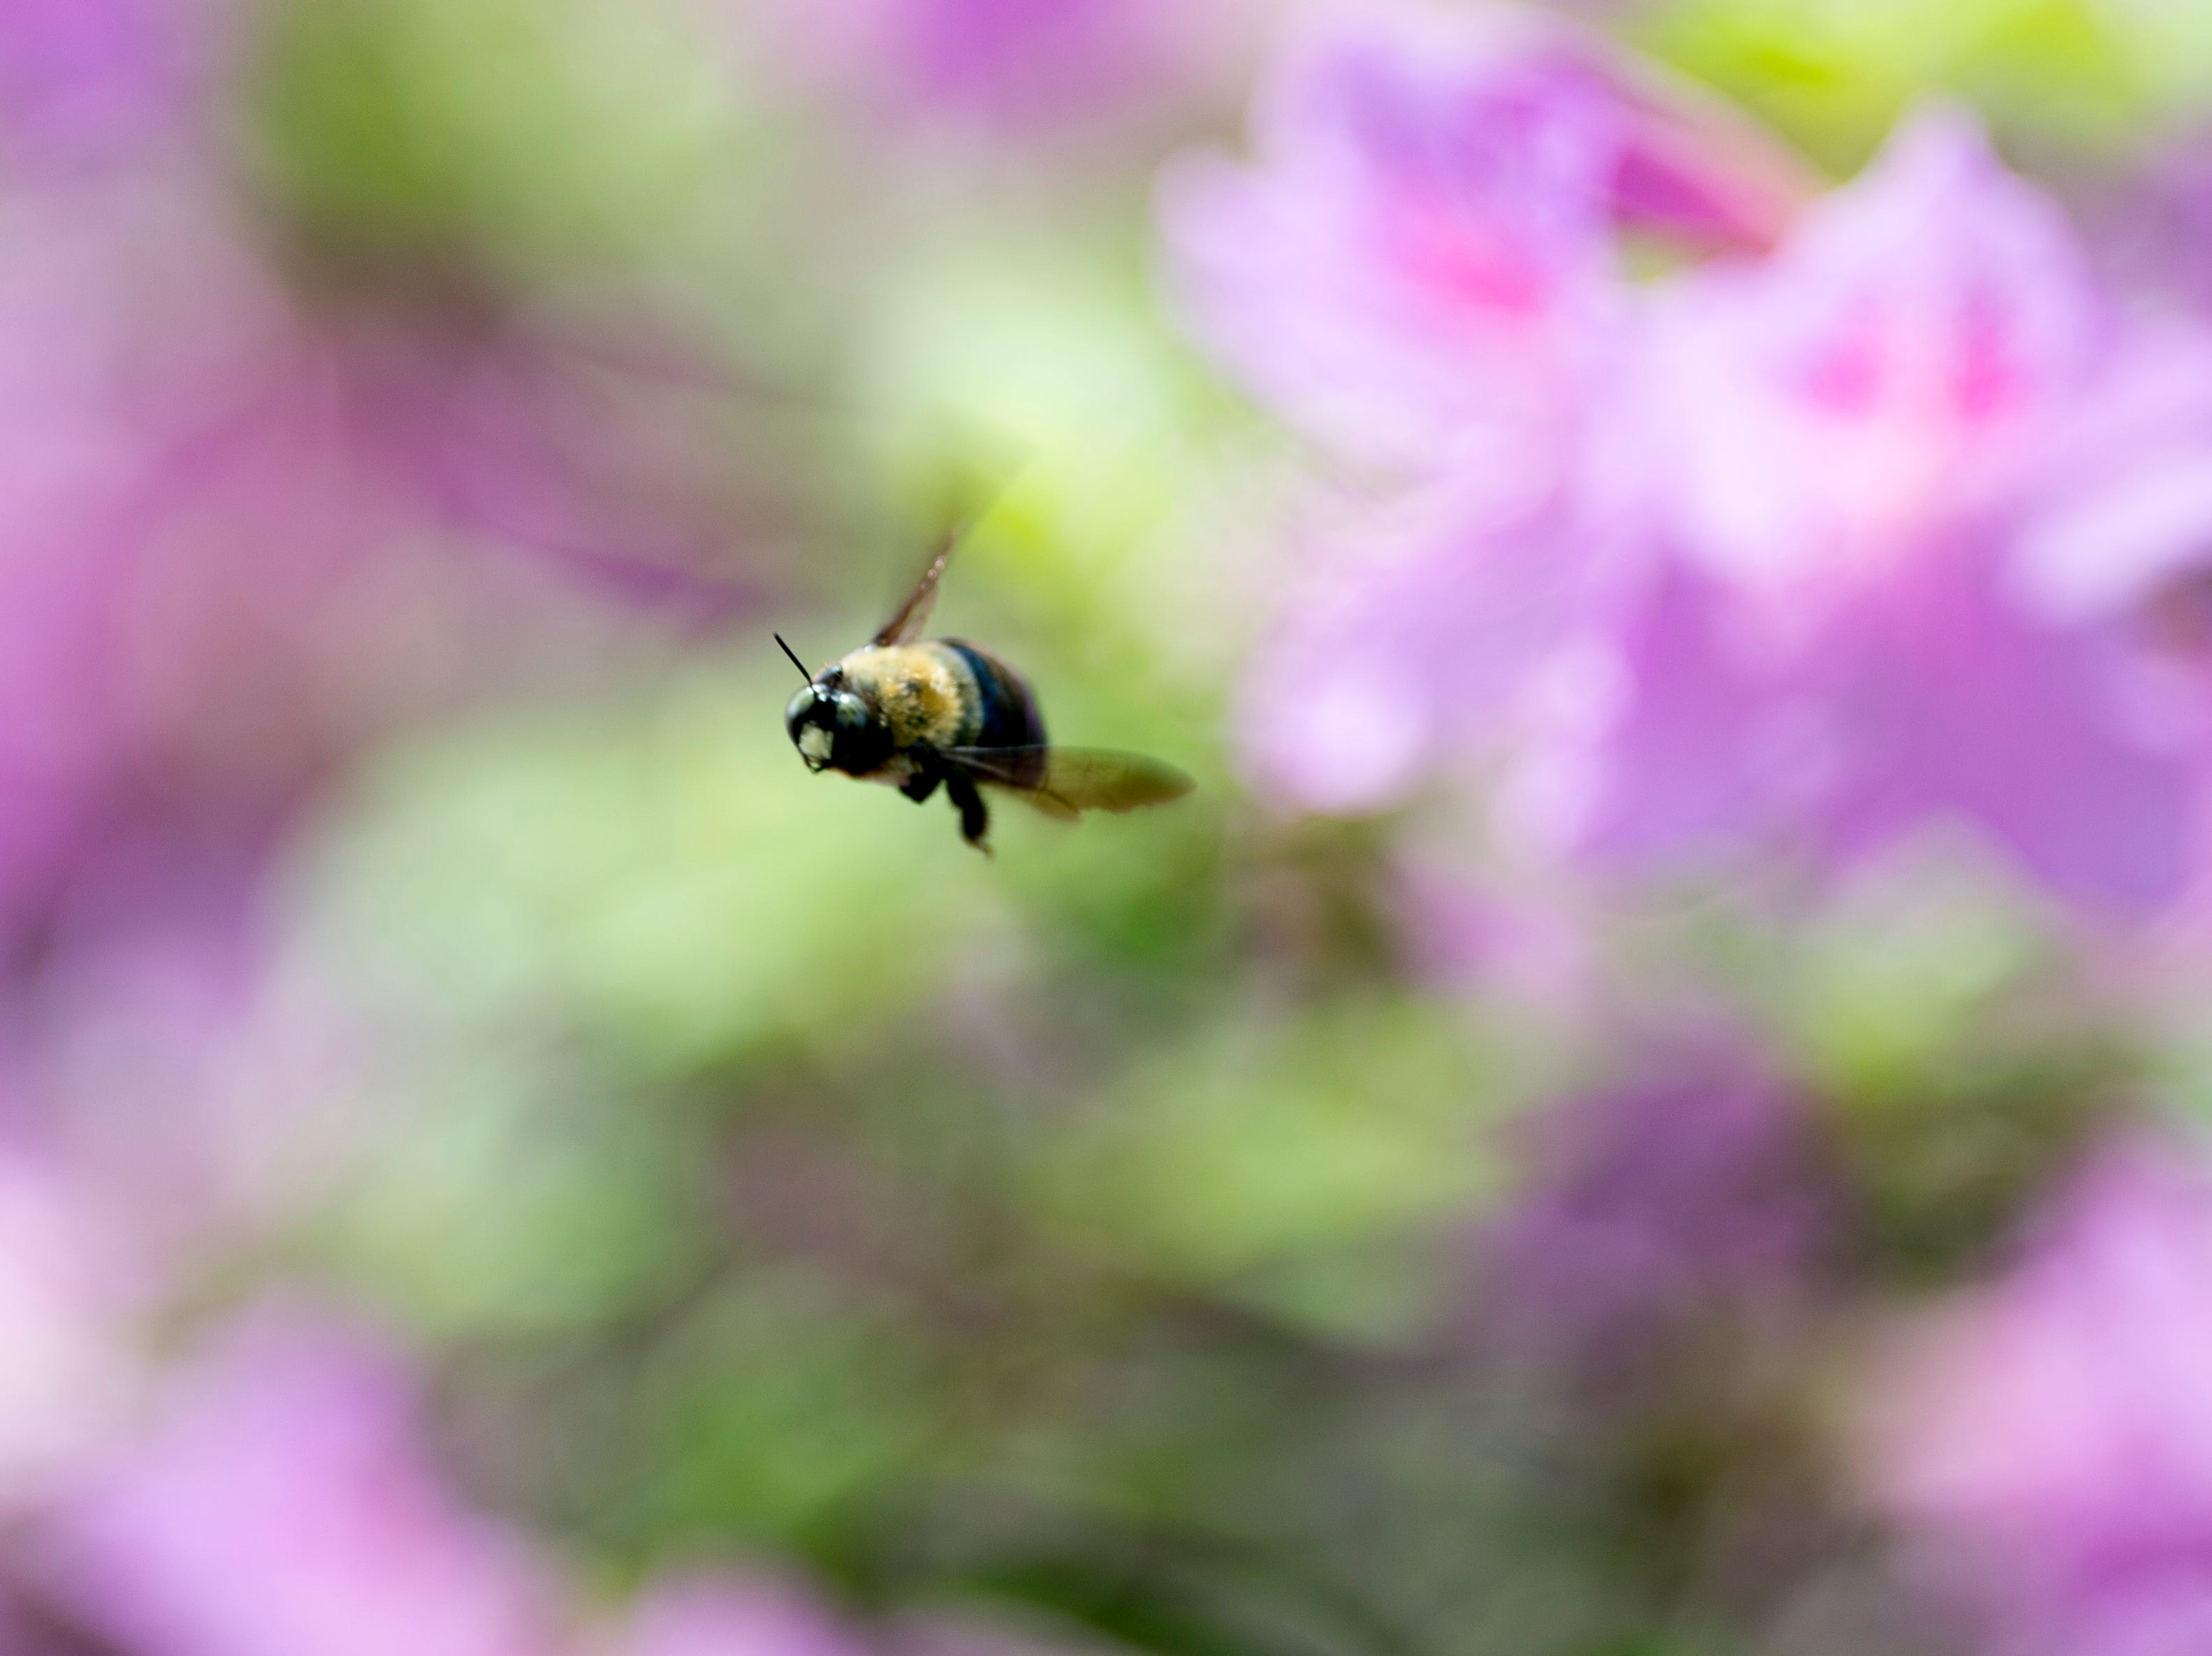 A bee buzzes through a flowering James Agee Park in Knoxville, Tennessee on Thursday, April 11, 2019.